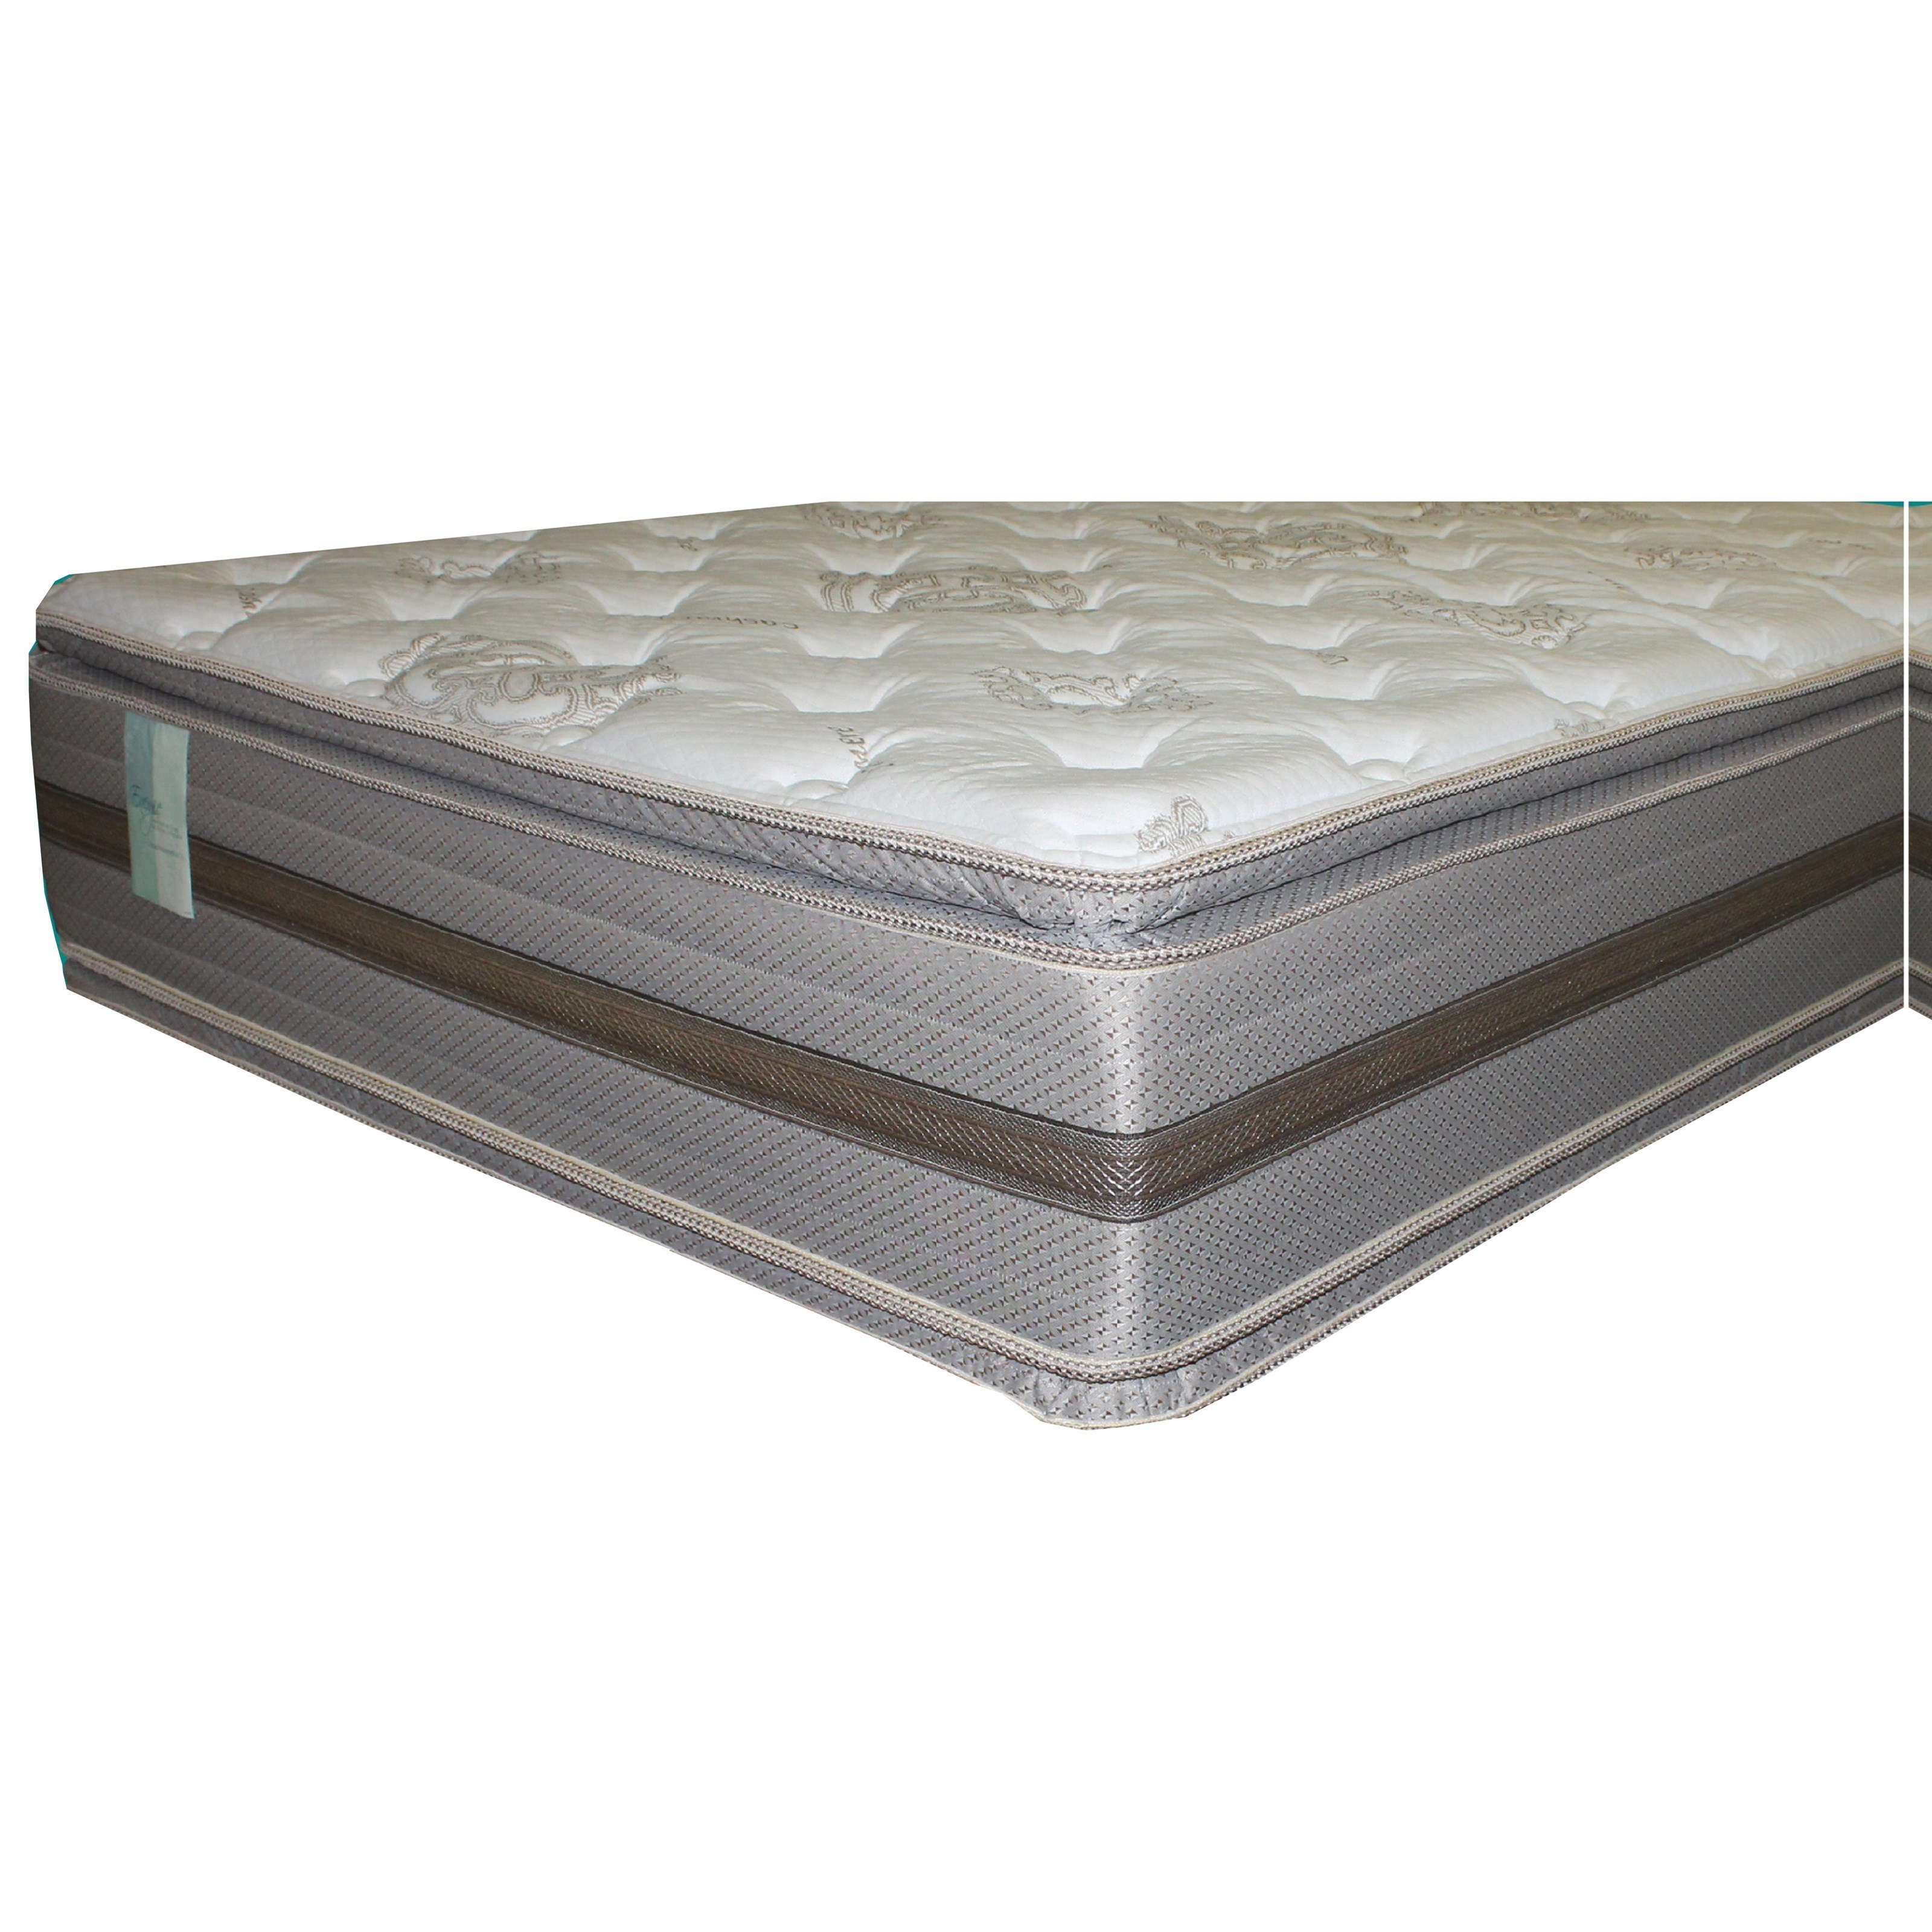 Golden Mattress Company Energie Double Sided Pt Queen Two Sided